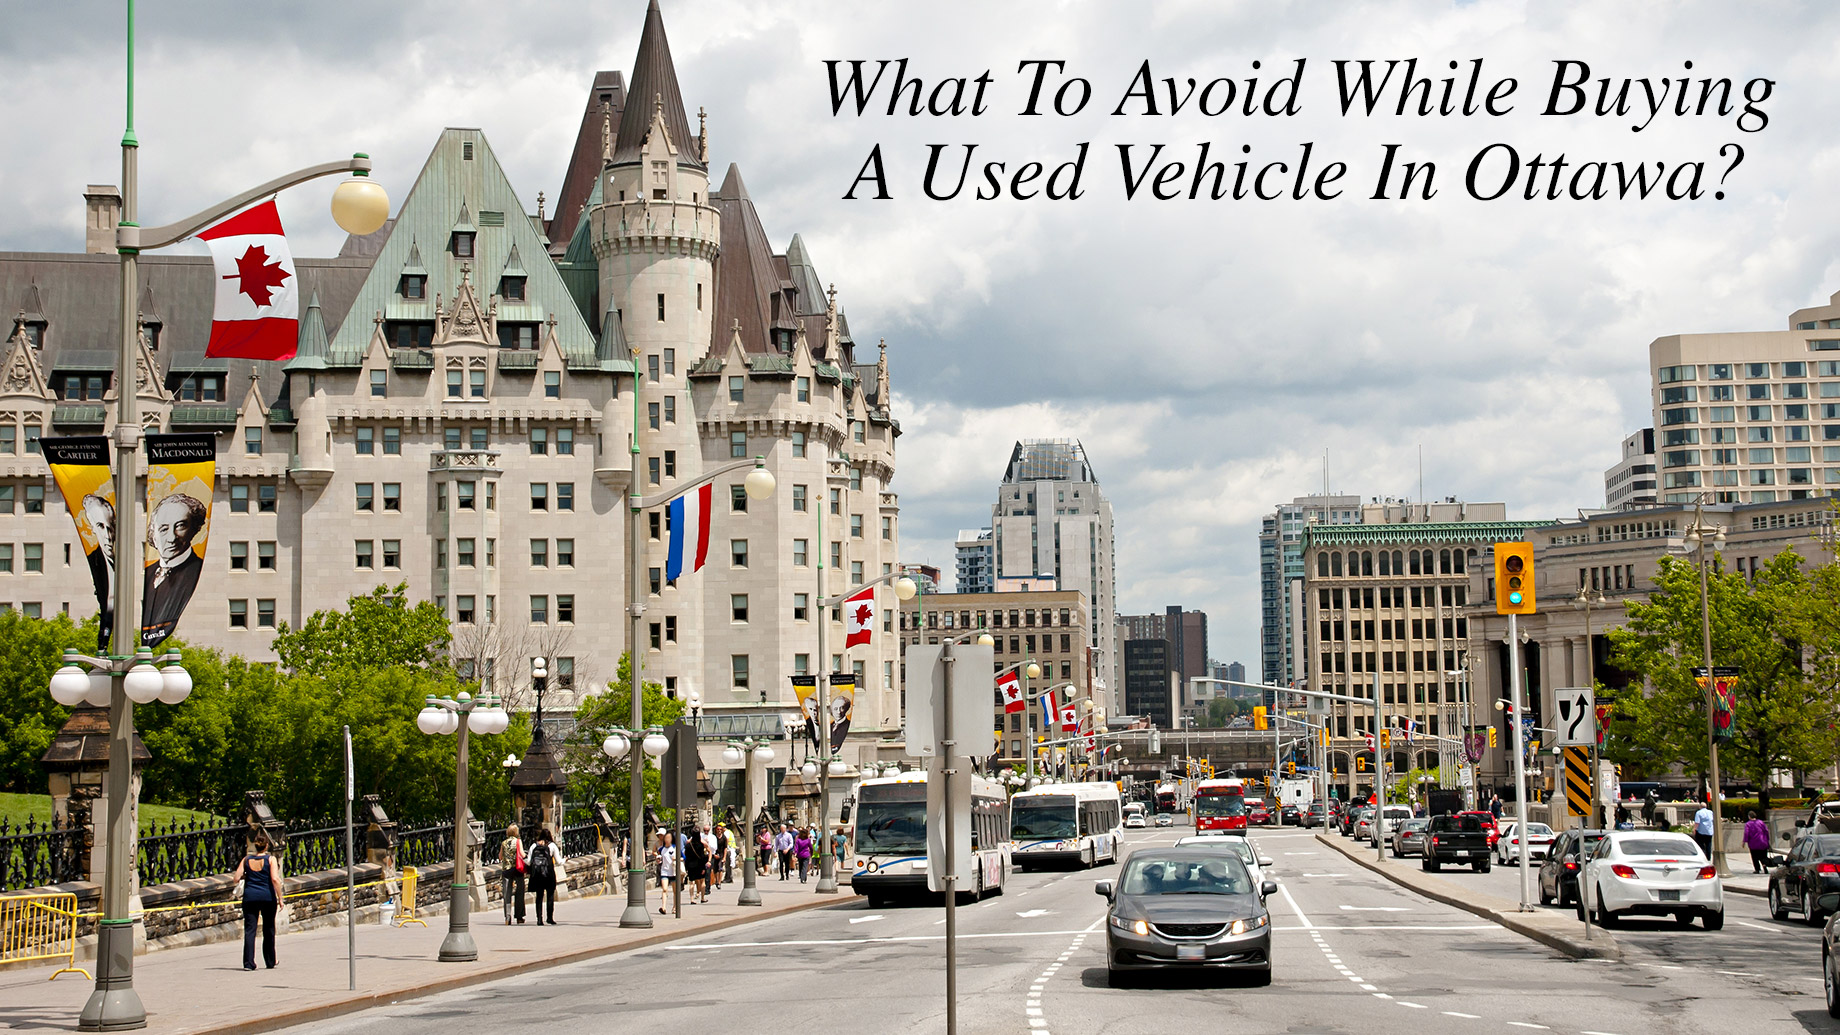 What To Avoid While Buying A Used Vehicle In Ottawa?